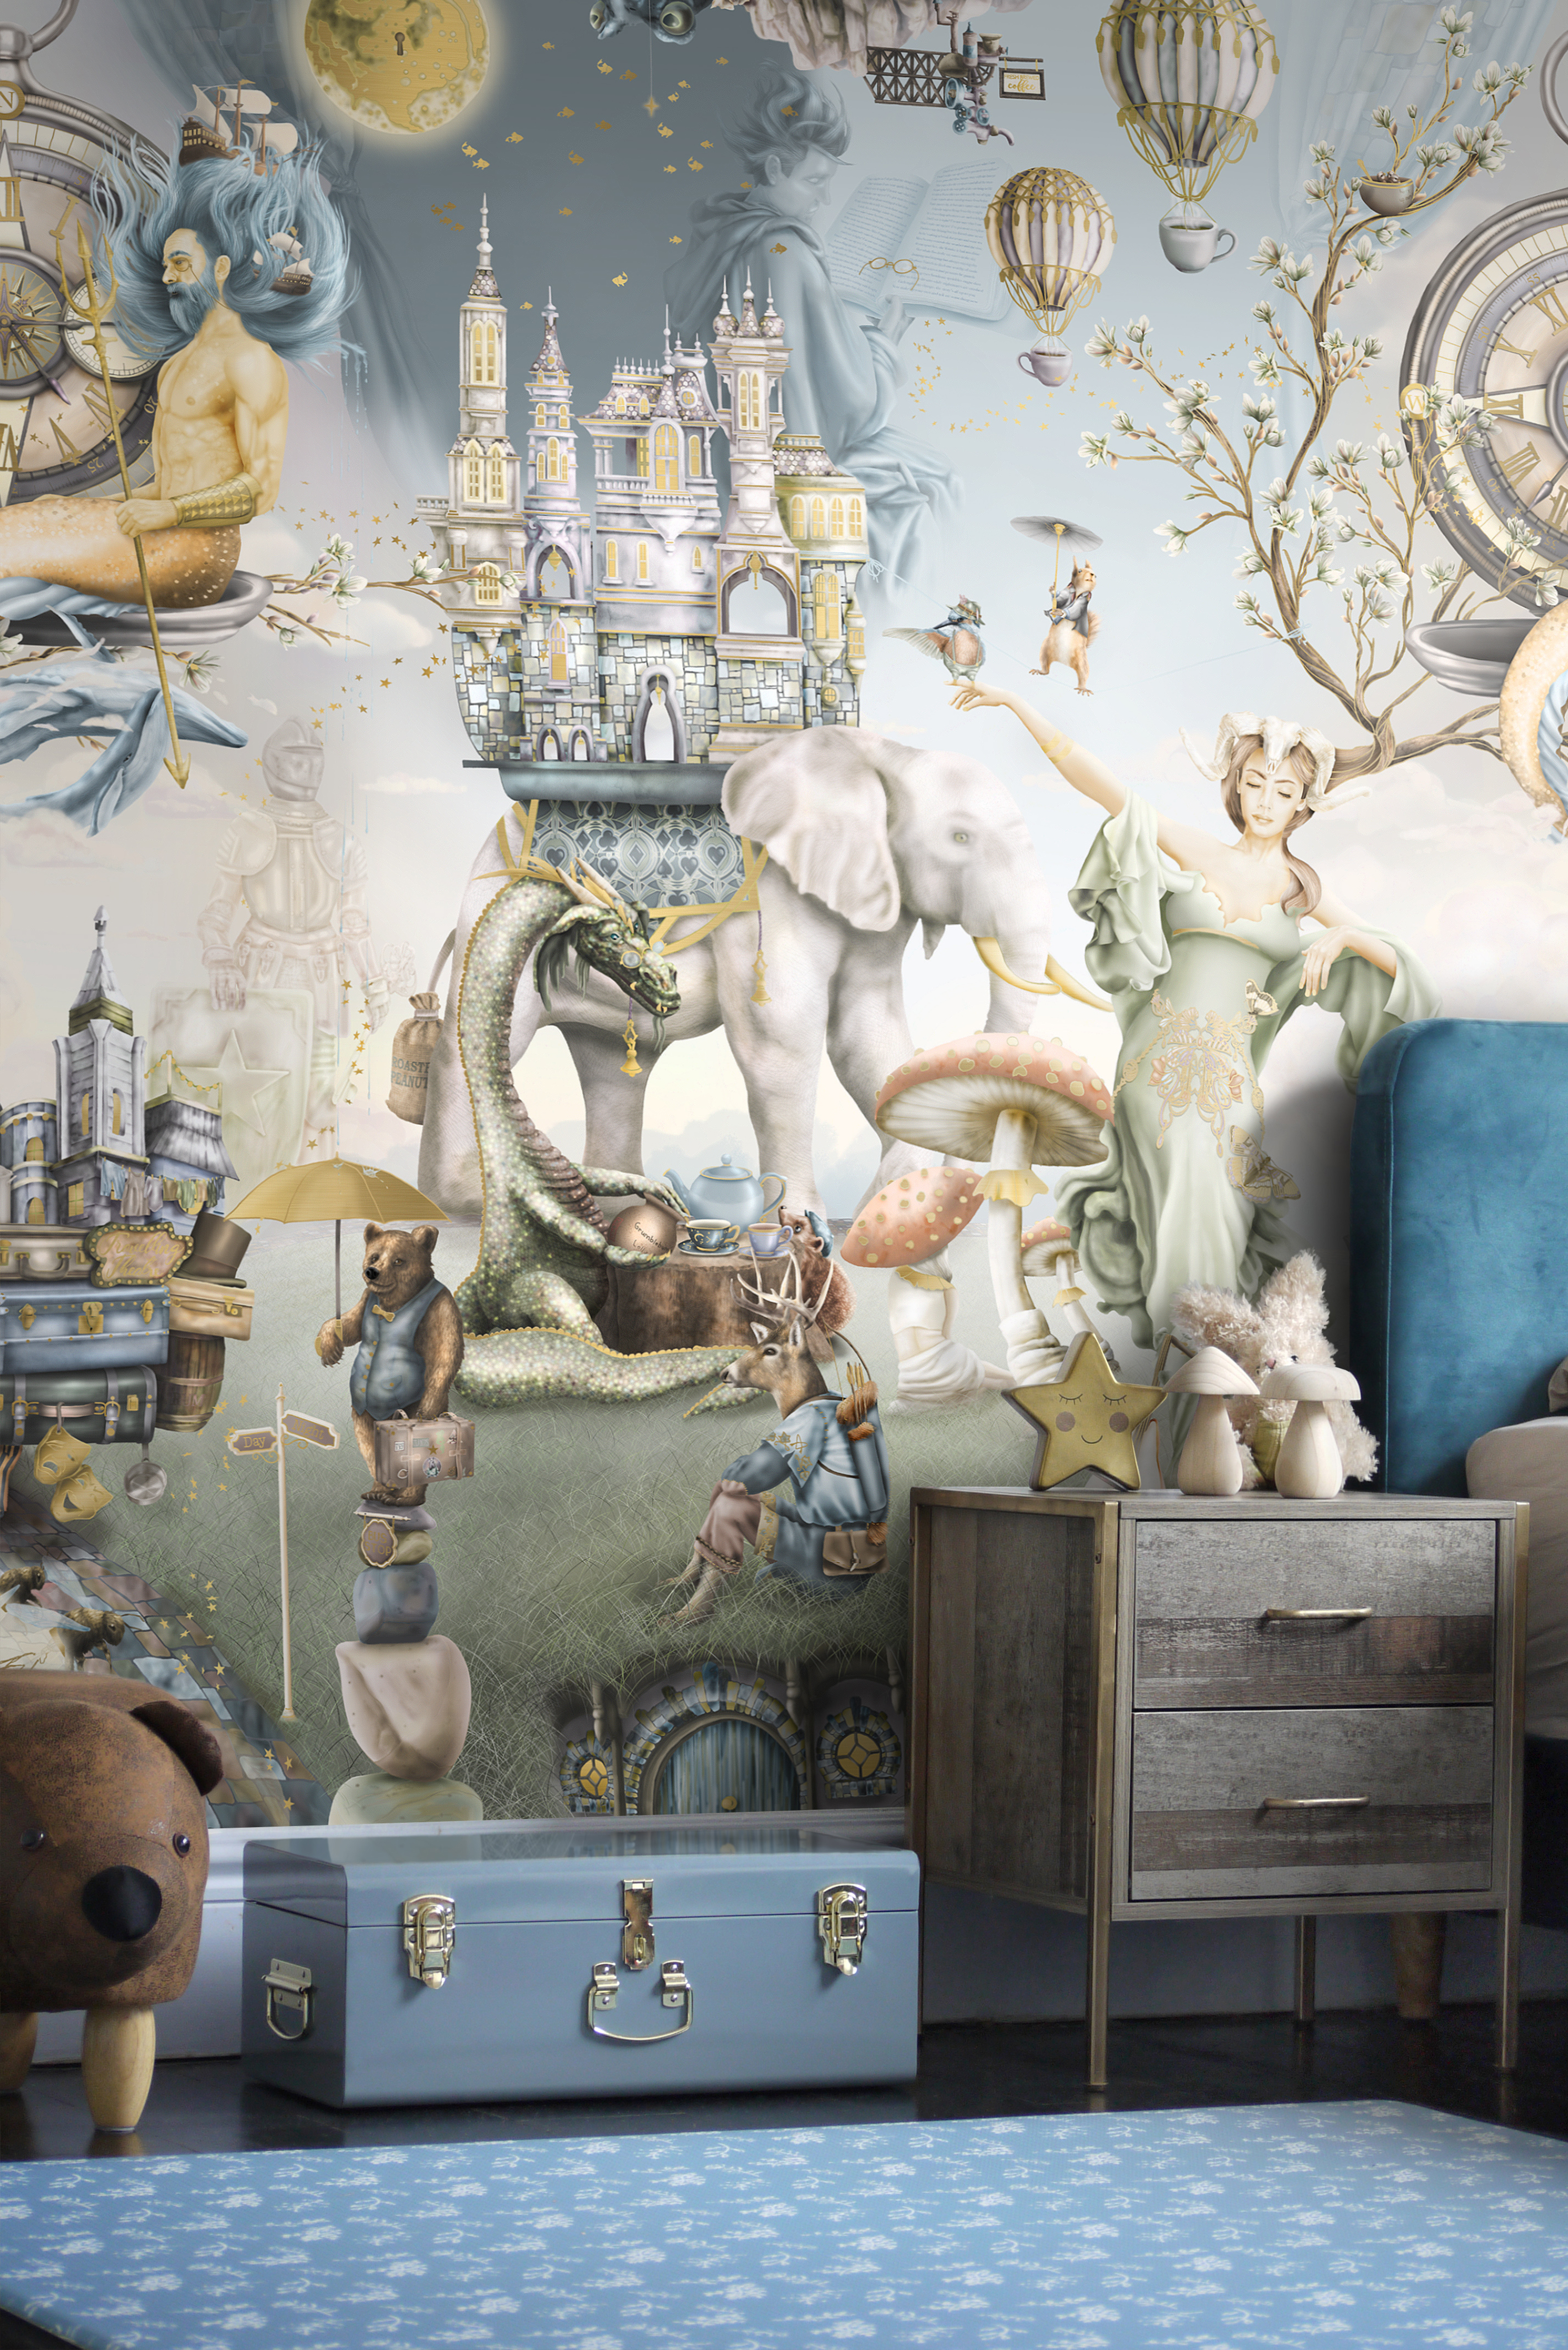 Boys woodland forest themed bedroom design in sage green, steel blue, gold, brown wood, forest green. Features custom kids wallpaper design from sydney australia. Kids bedroom interior design ideas and decor. Wallpaper features dragon, bear, deer, elephant, compass, moon